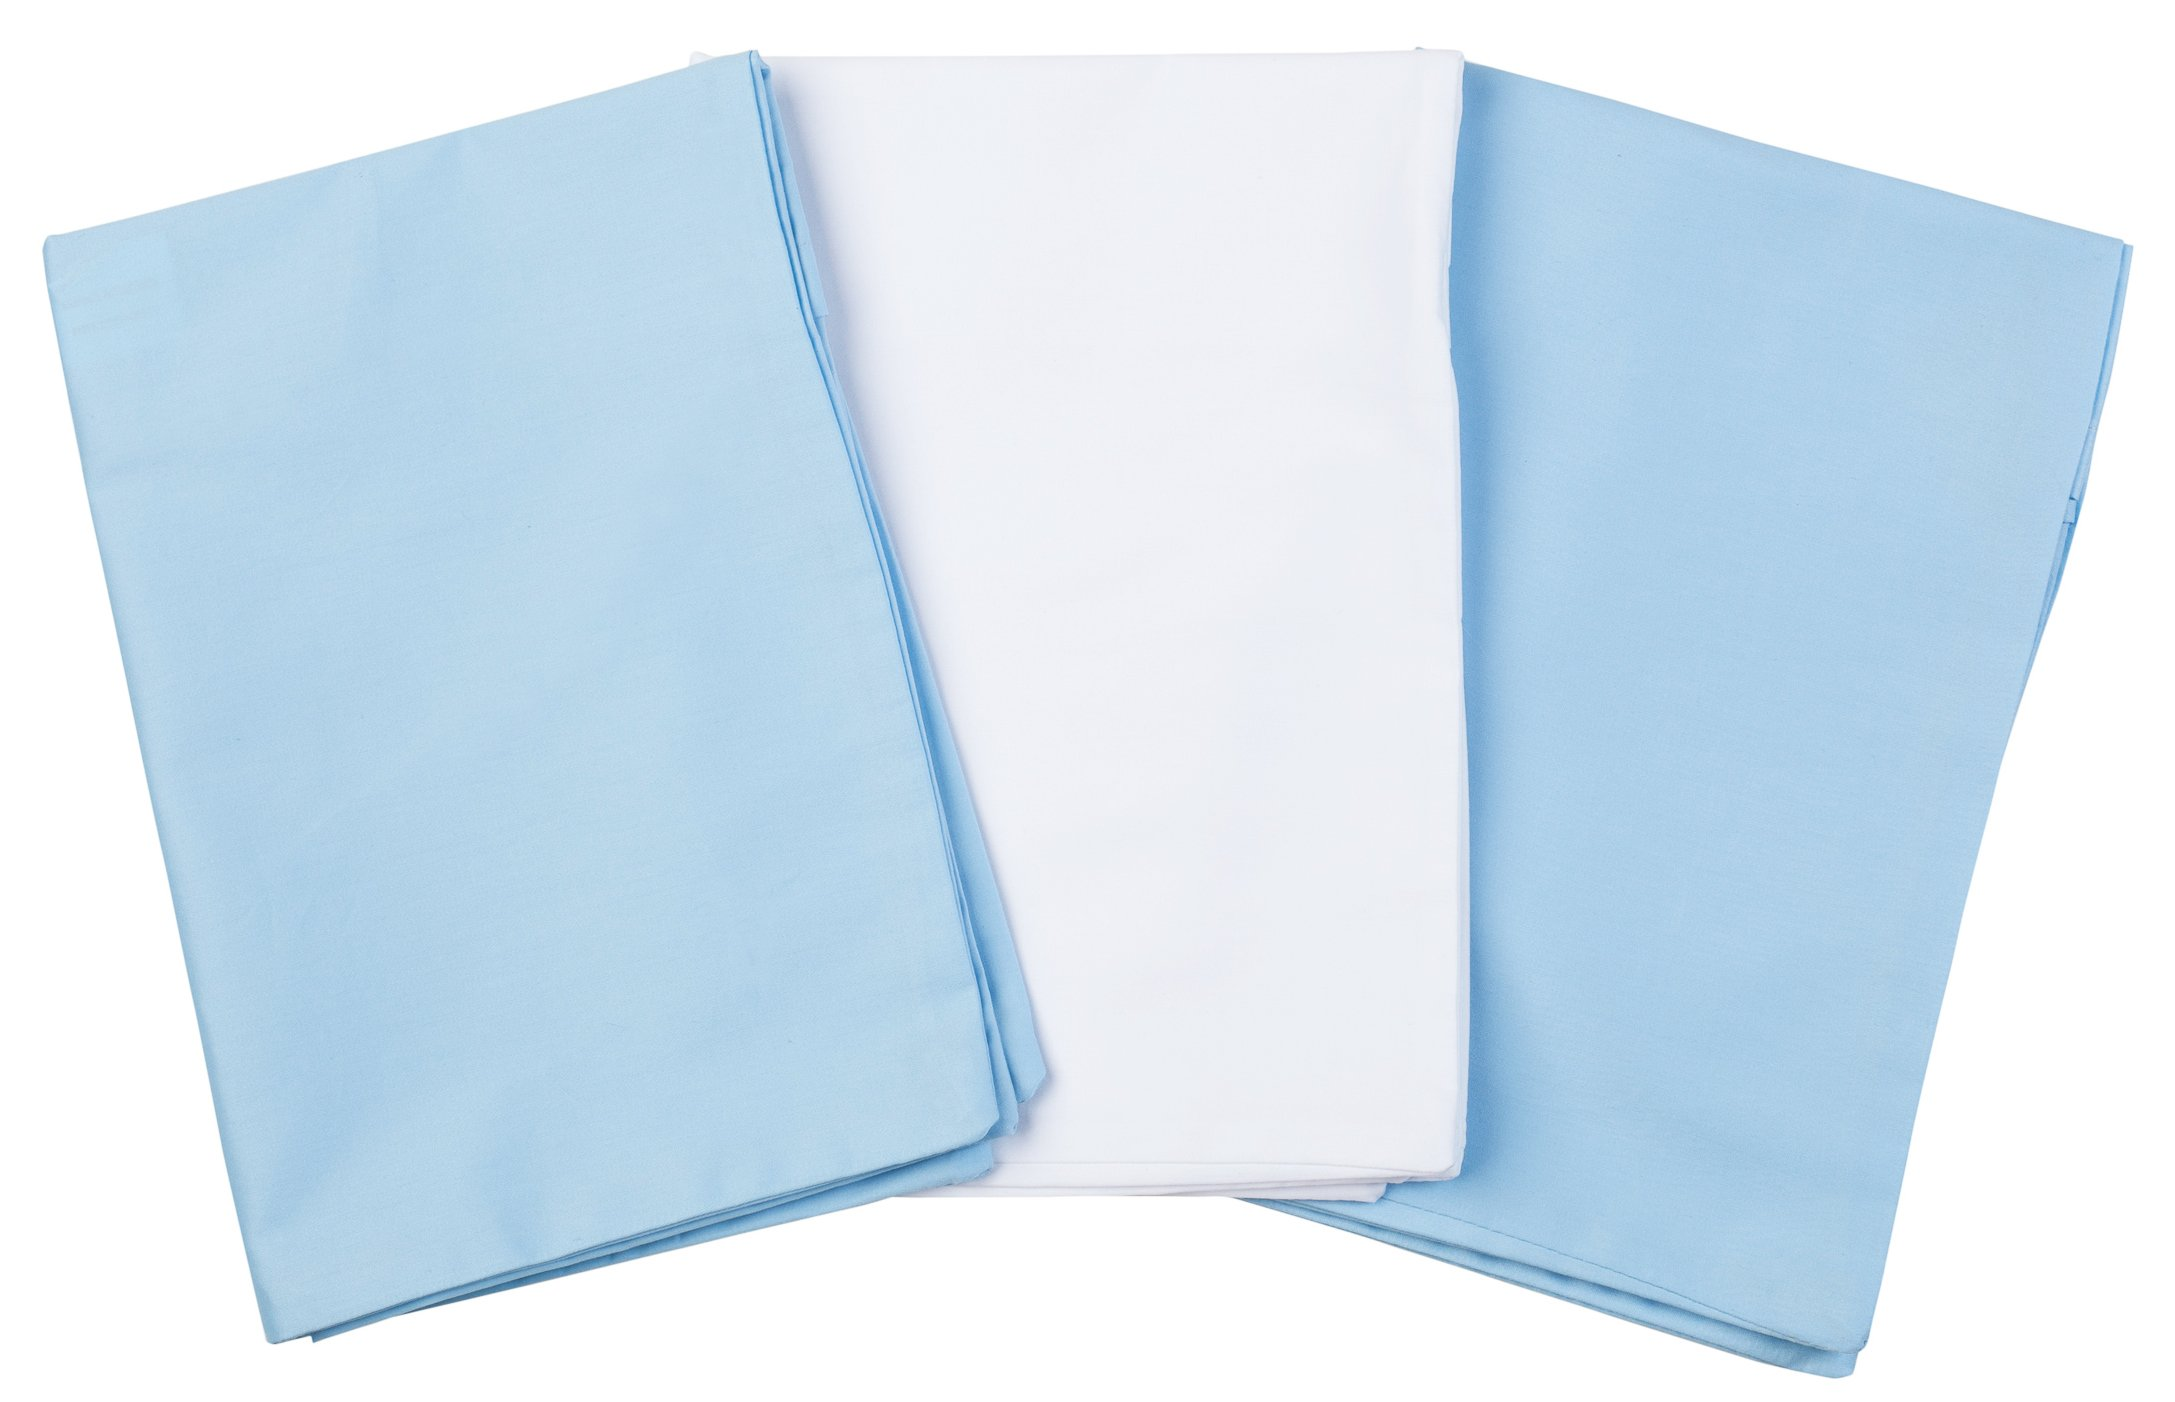 3 Toddler Pillowcases - 2 Blue and 1 White - Envelope Style - For Pillows Sized 13x18 and 14x19 - 100% Cotton With Soft Sateen Weave - Machine Washable